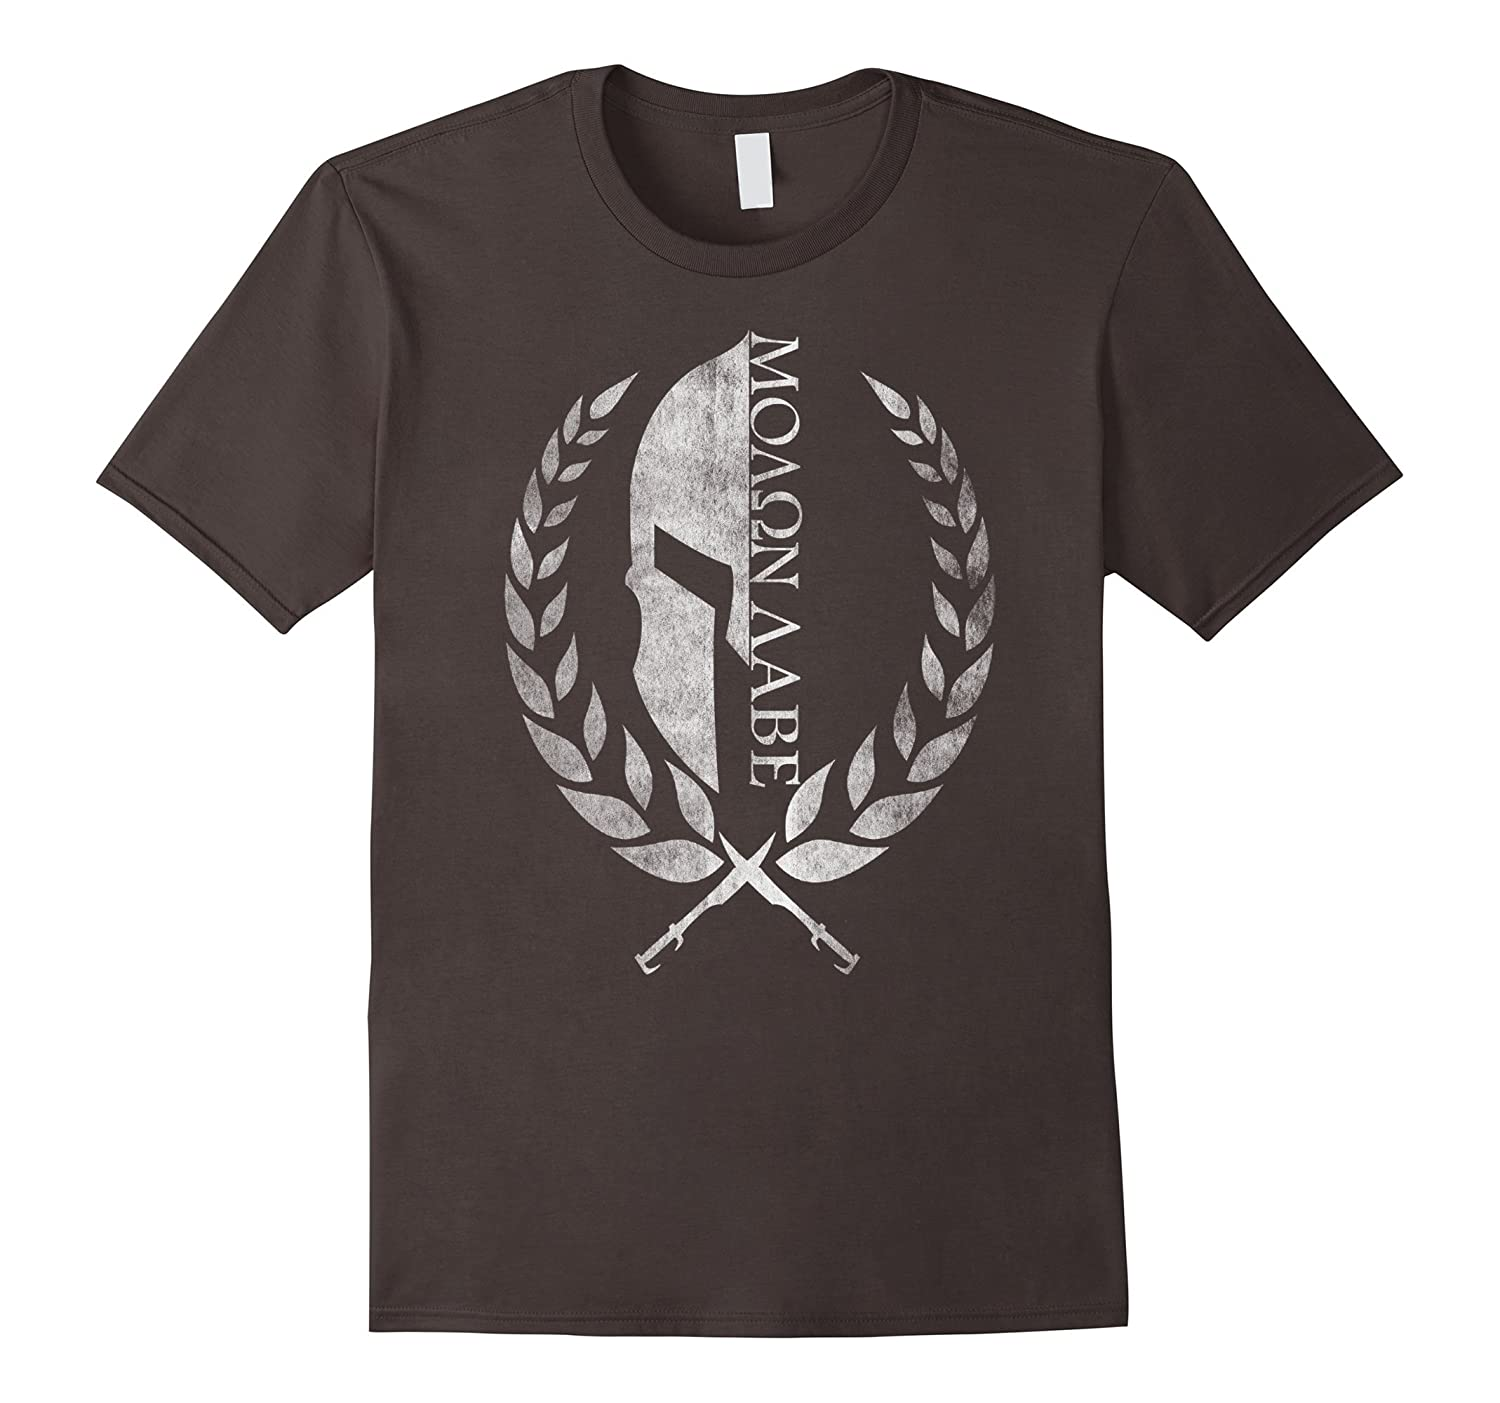 65bd83791ae Amazon.com  Molon Labe Vintage T-shirt - Spartan white color ver  Clothing